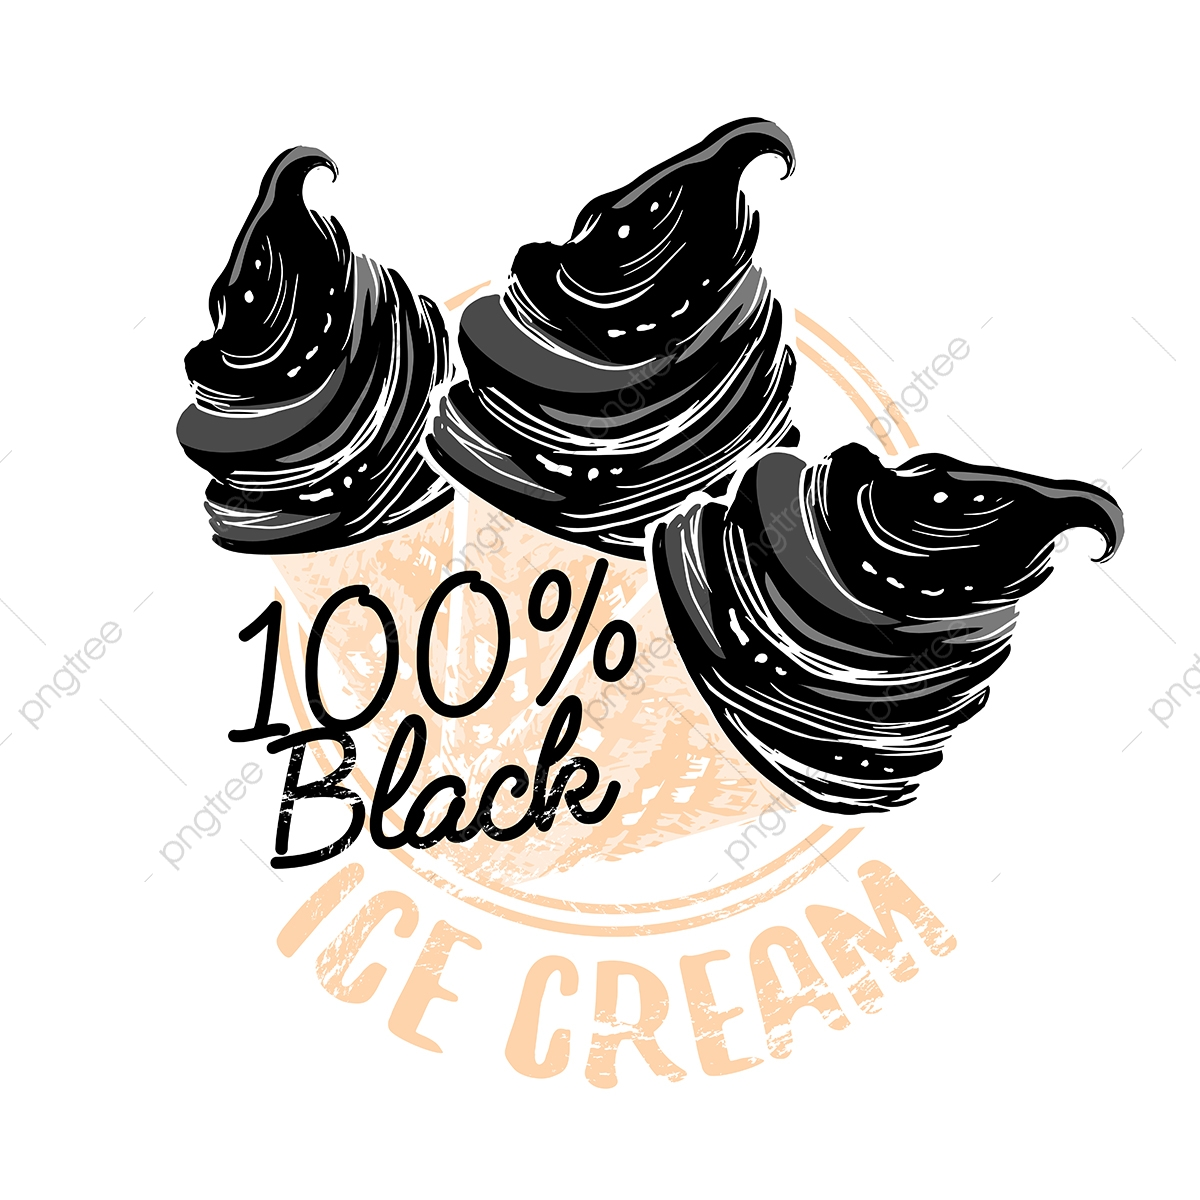 black ice cream grunge textured shop stump for poster design ice cream black stamp png and vector with transparent background for free download https pngtree com freepng black ice cream grunge textured shop stump for poster design 3605176 html